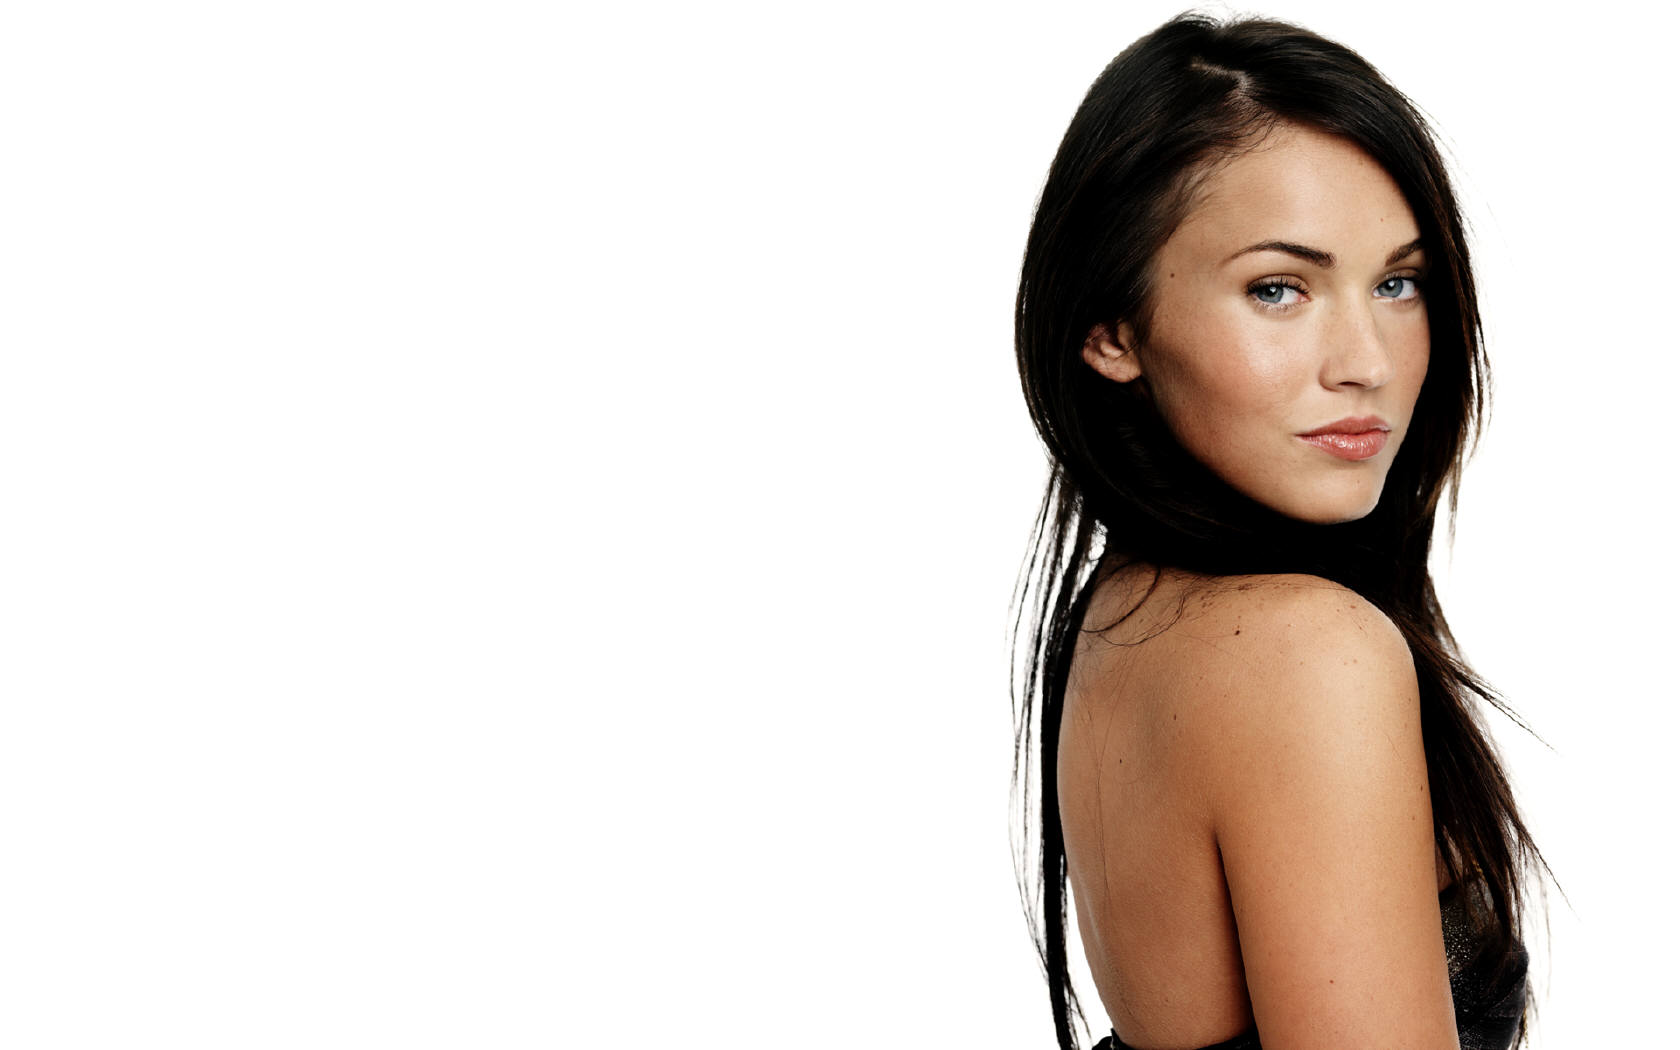 Megan fox   Megan Fox Wallpaper 356440 1680x1050